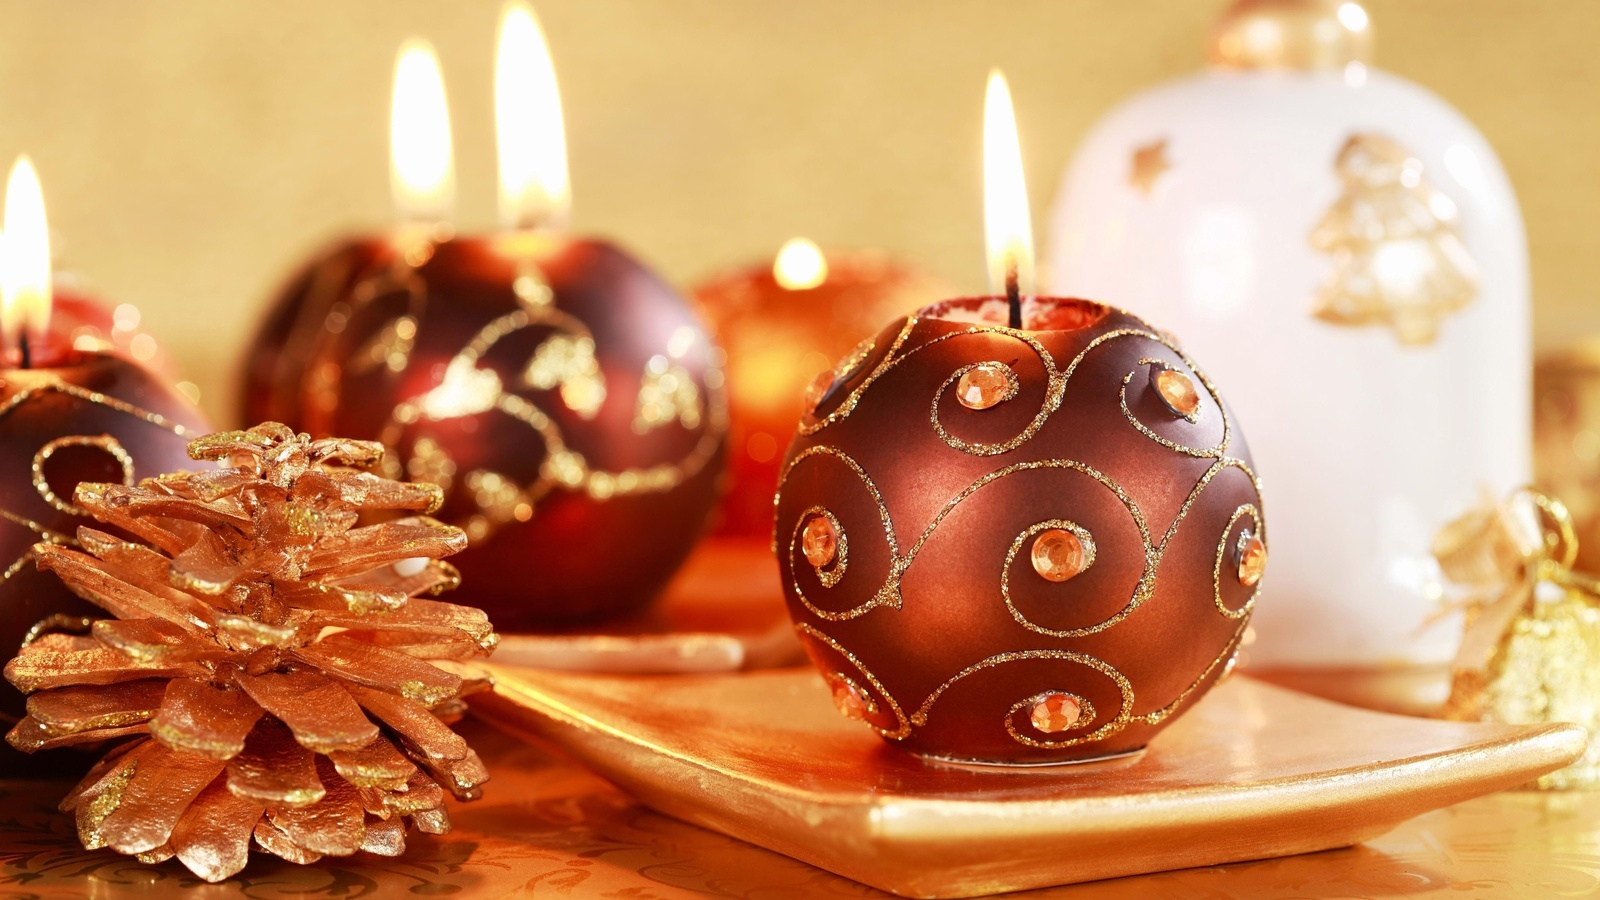 19404 download wallpaper Holidays, Background, New Year, Christmas, Xmas, Candles screensavers and pictures for free